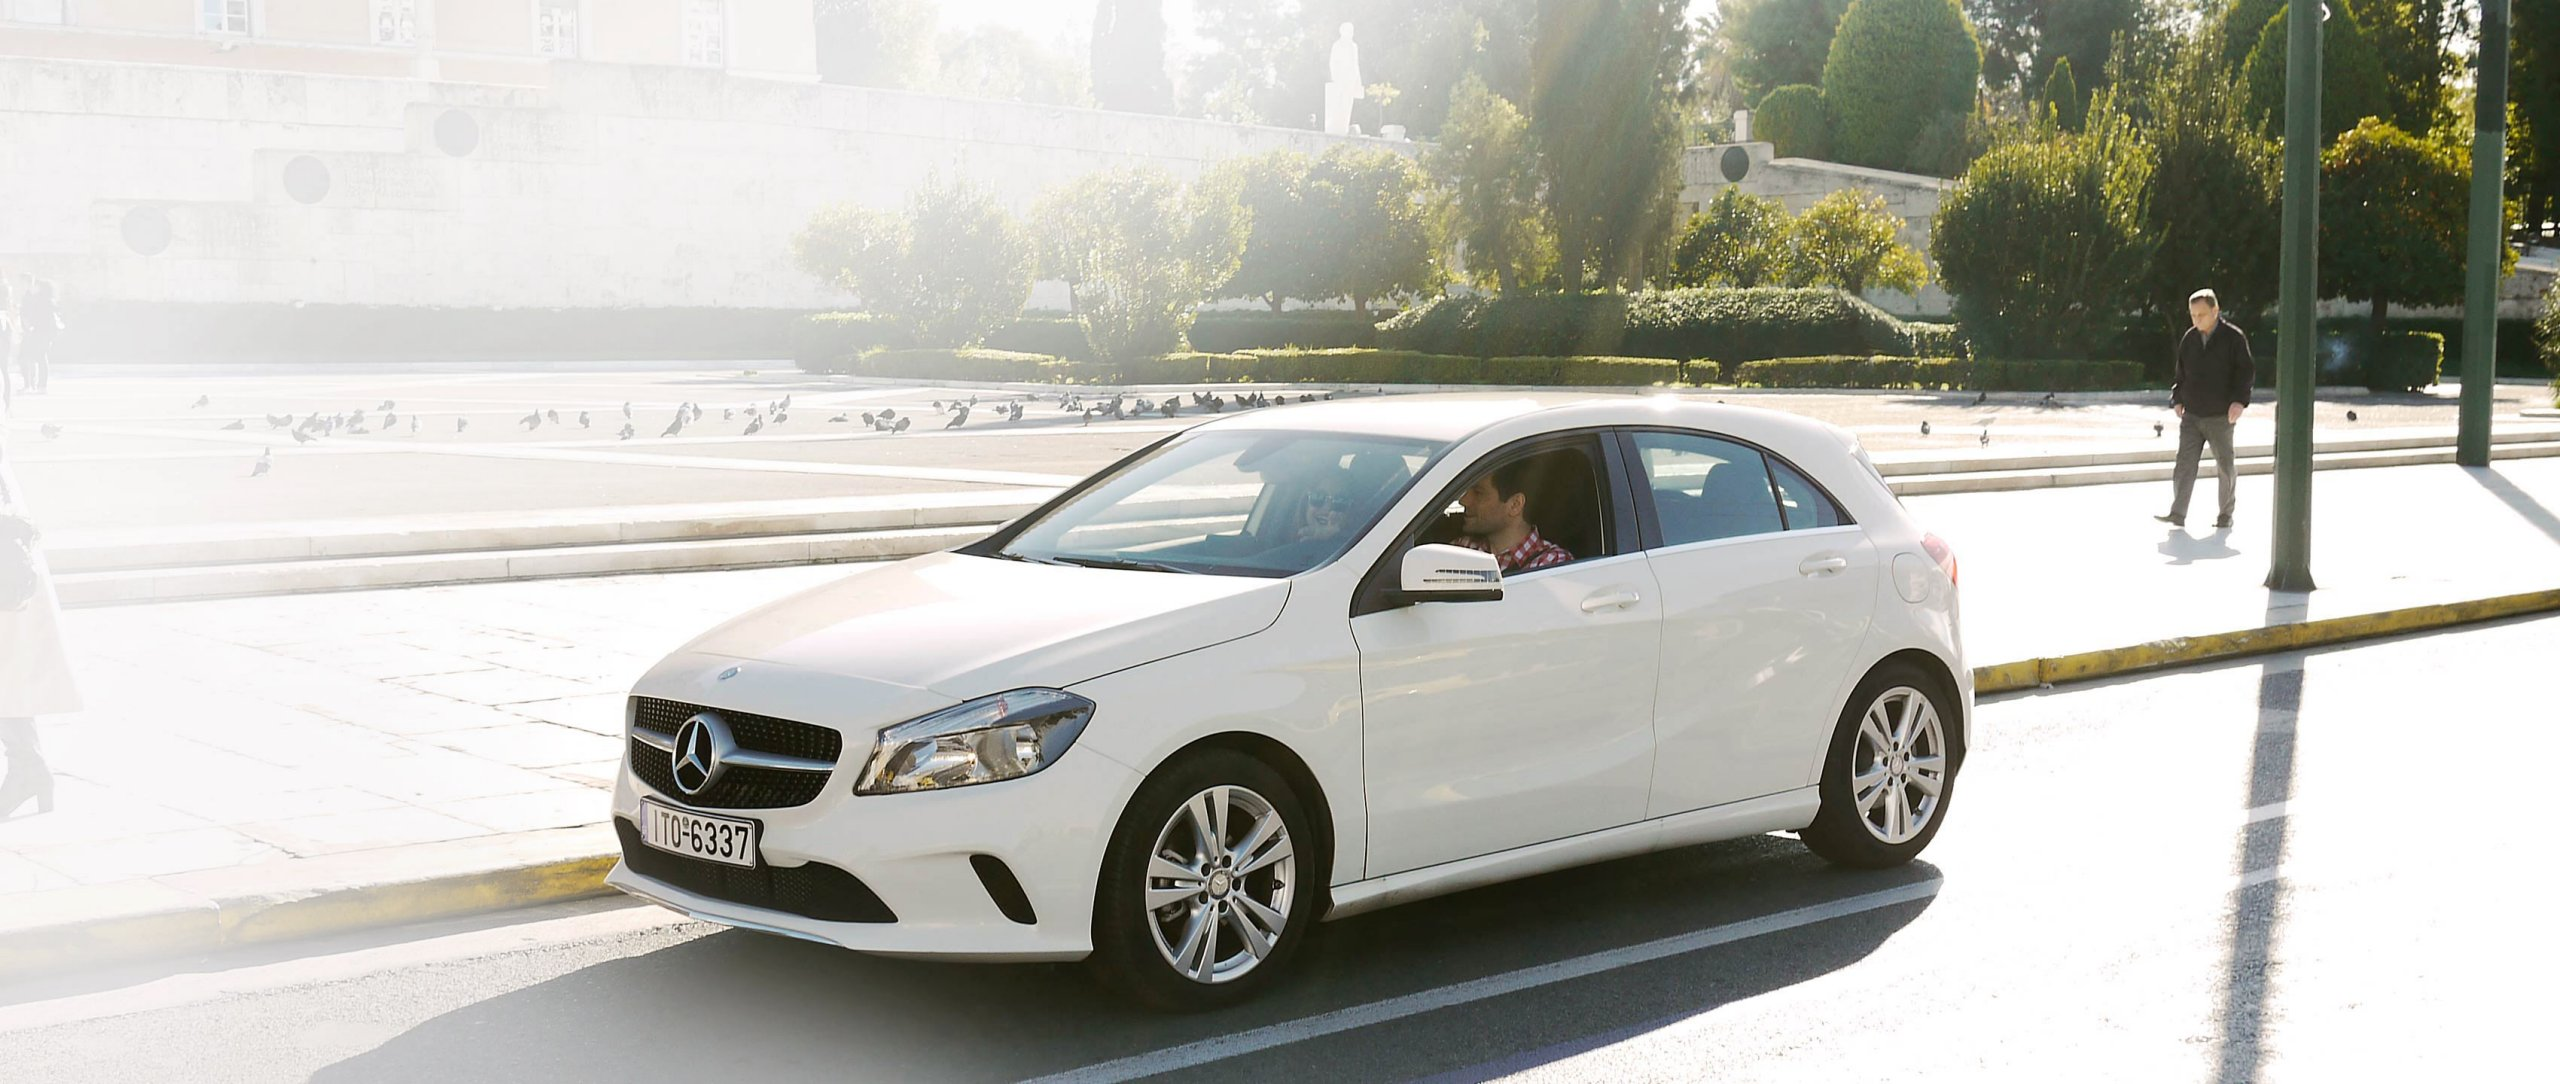 He says, She says – An Athens road trip in an A-Class.